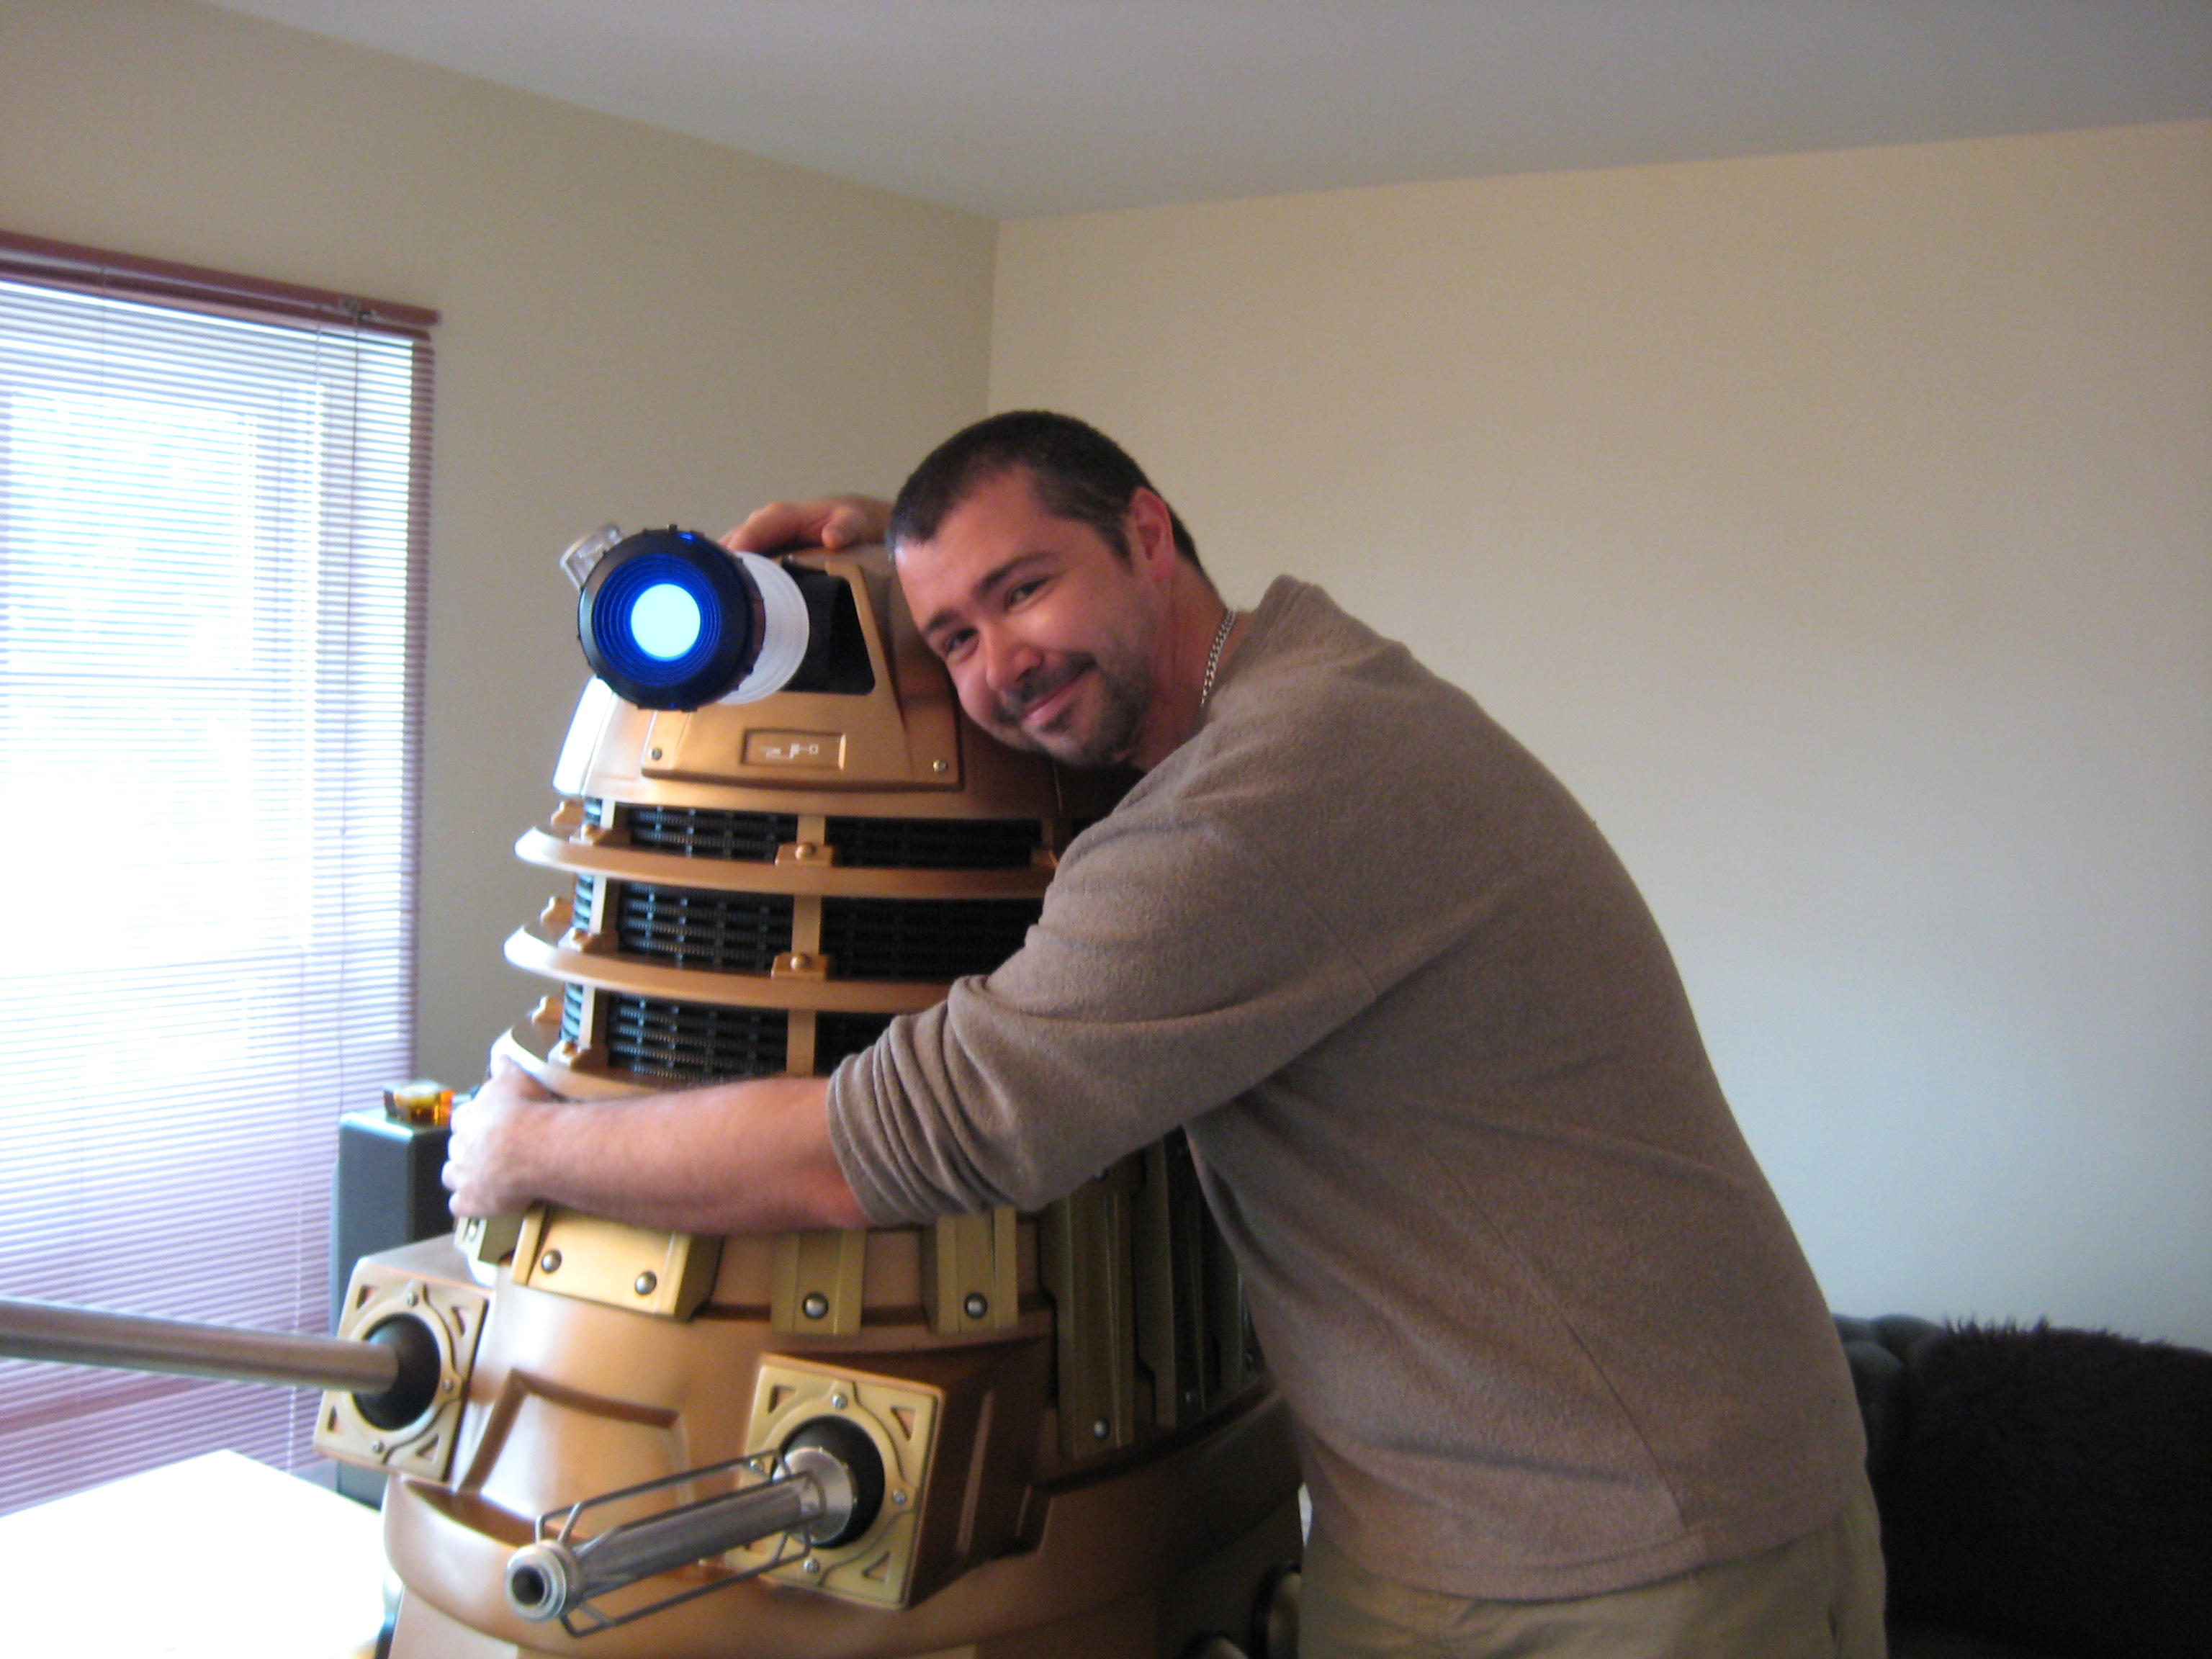 man hugging Dalek in the WRONG way!